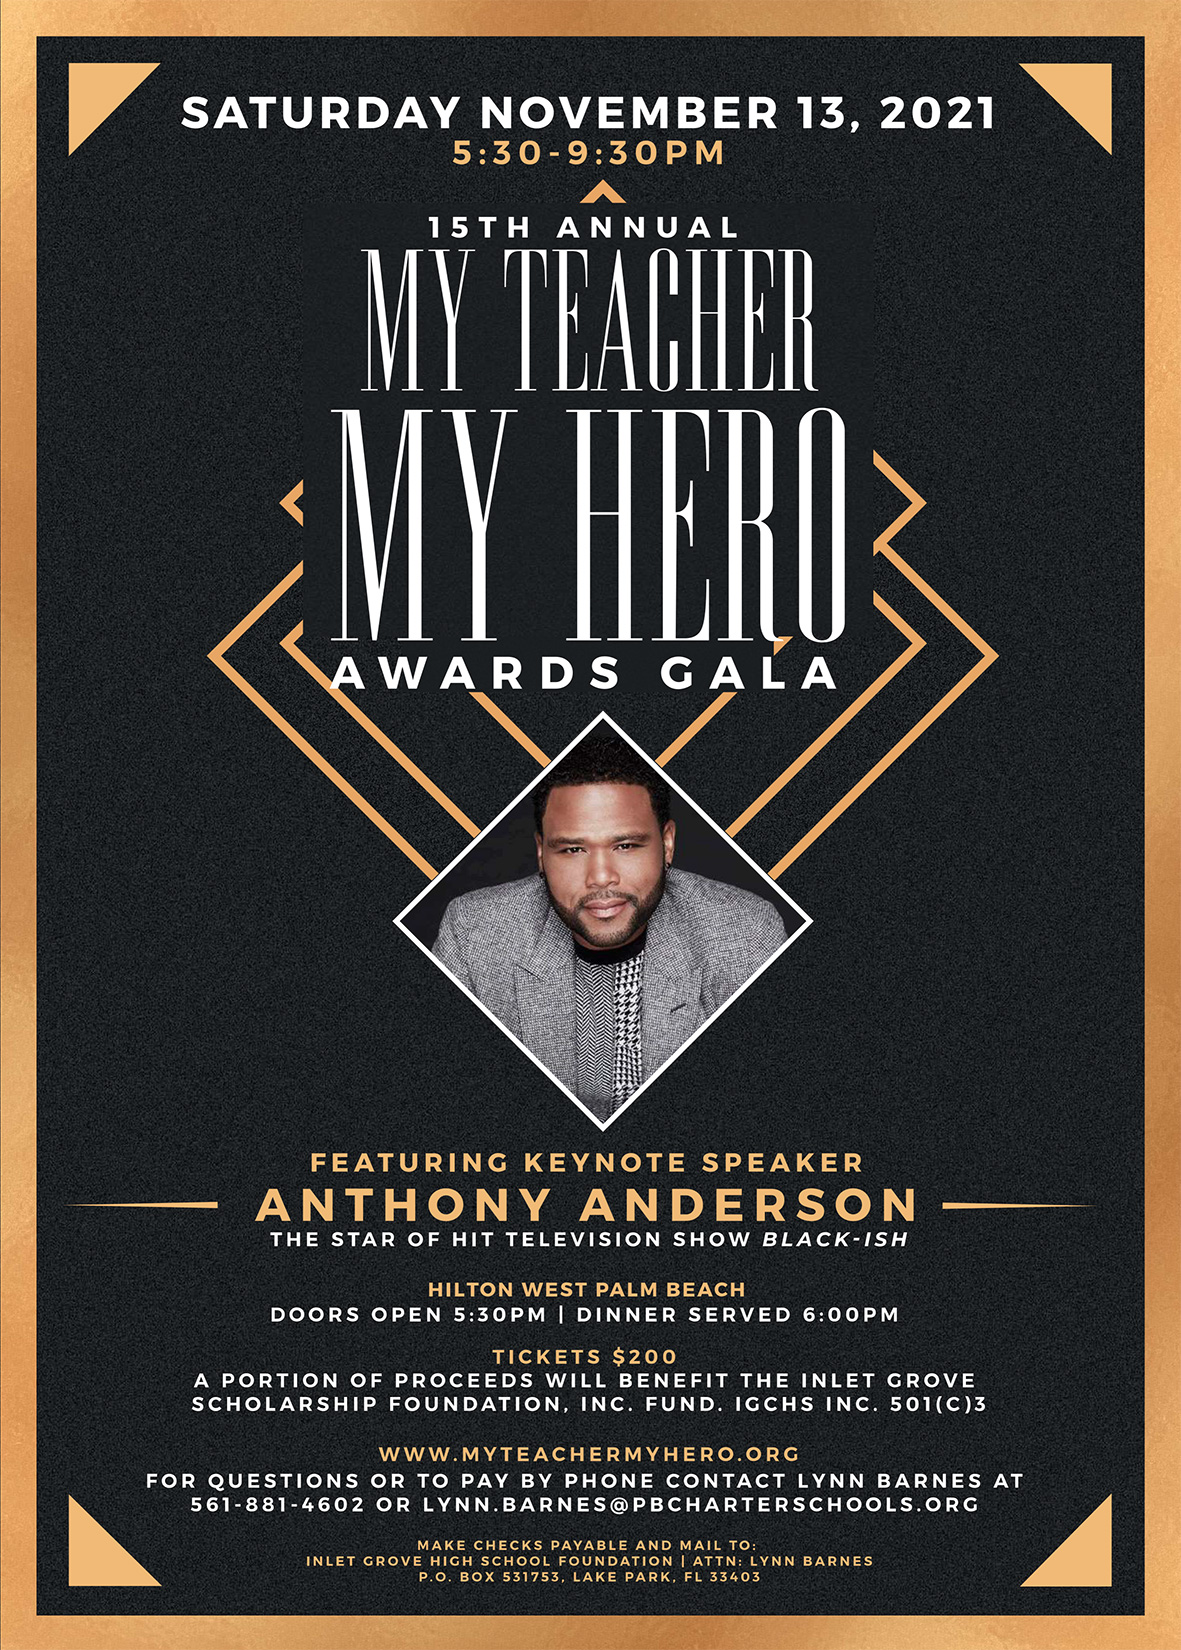 My Teacher My Hero Awards Banner Guest Anthony Anderson Nov 13, 2021